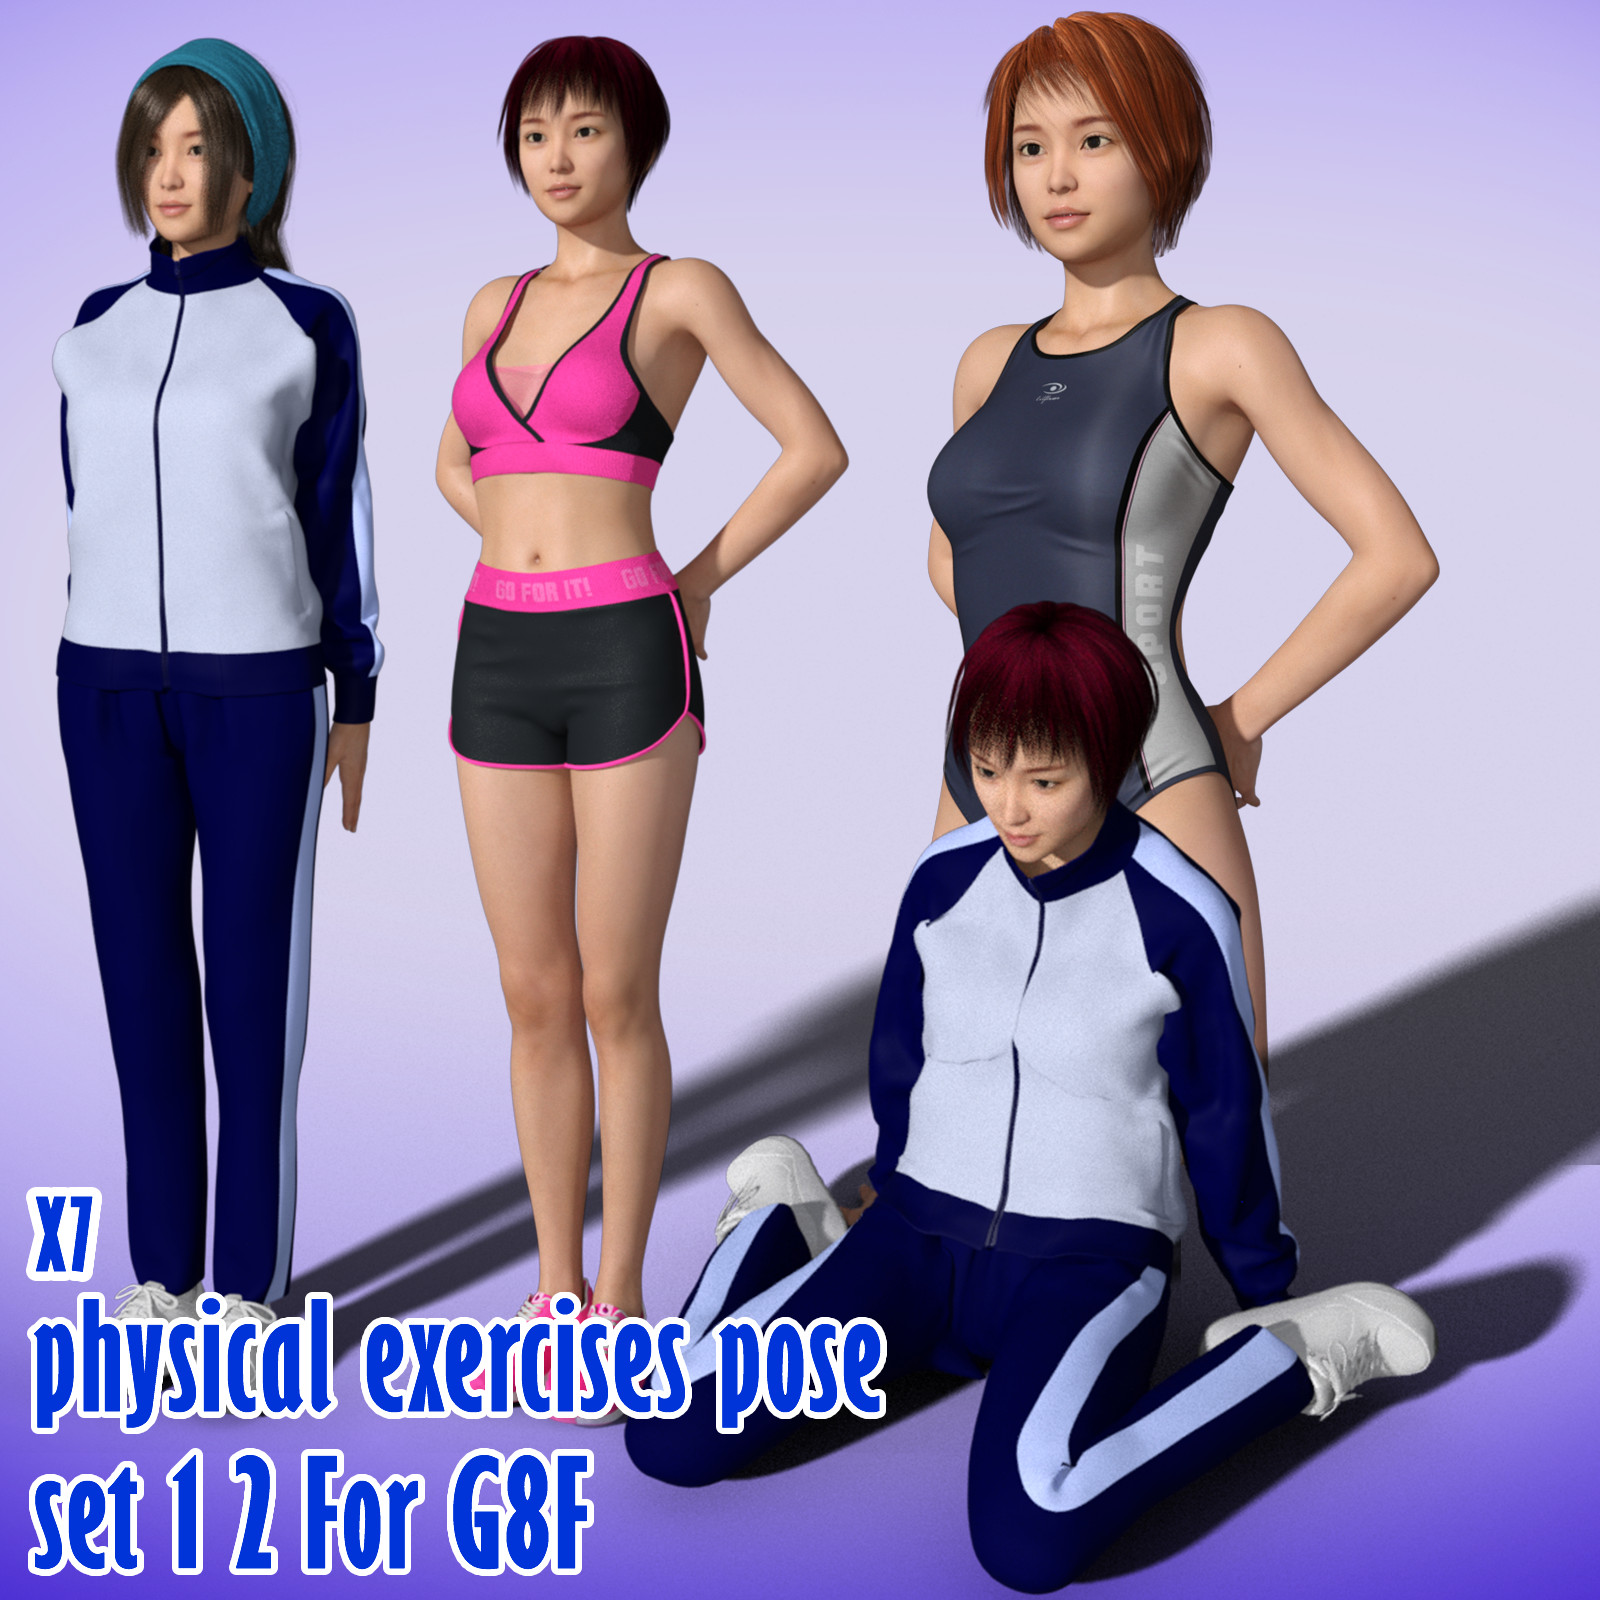 X7 physical exercises poses set 1 2 for G8F by x7